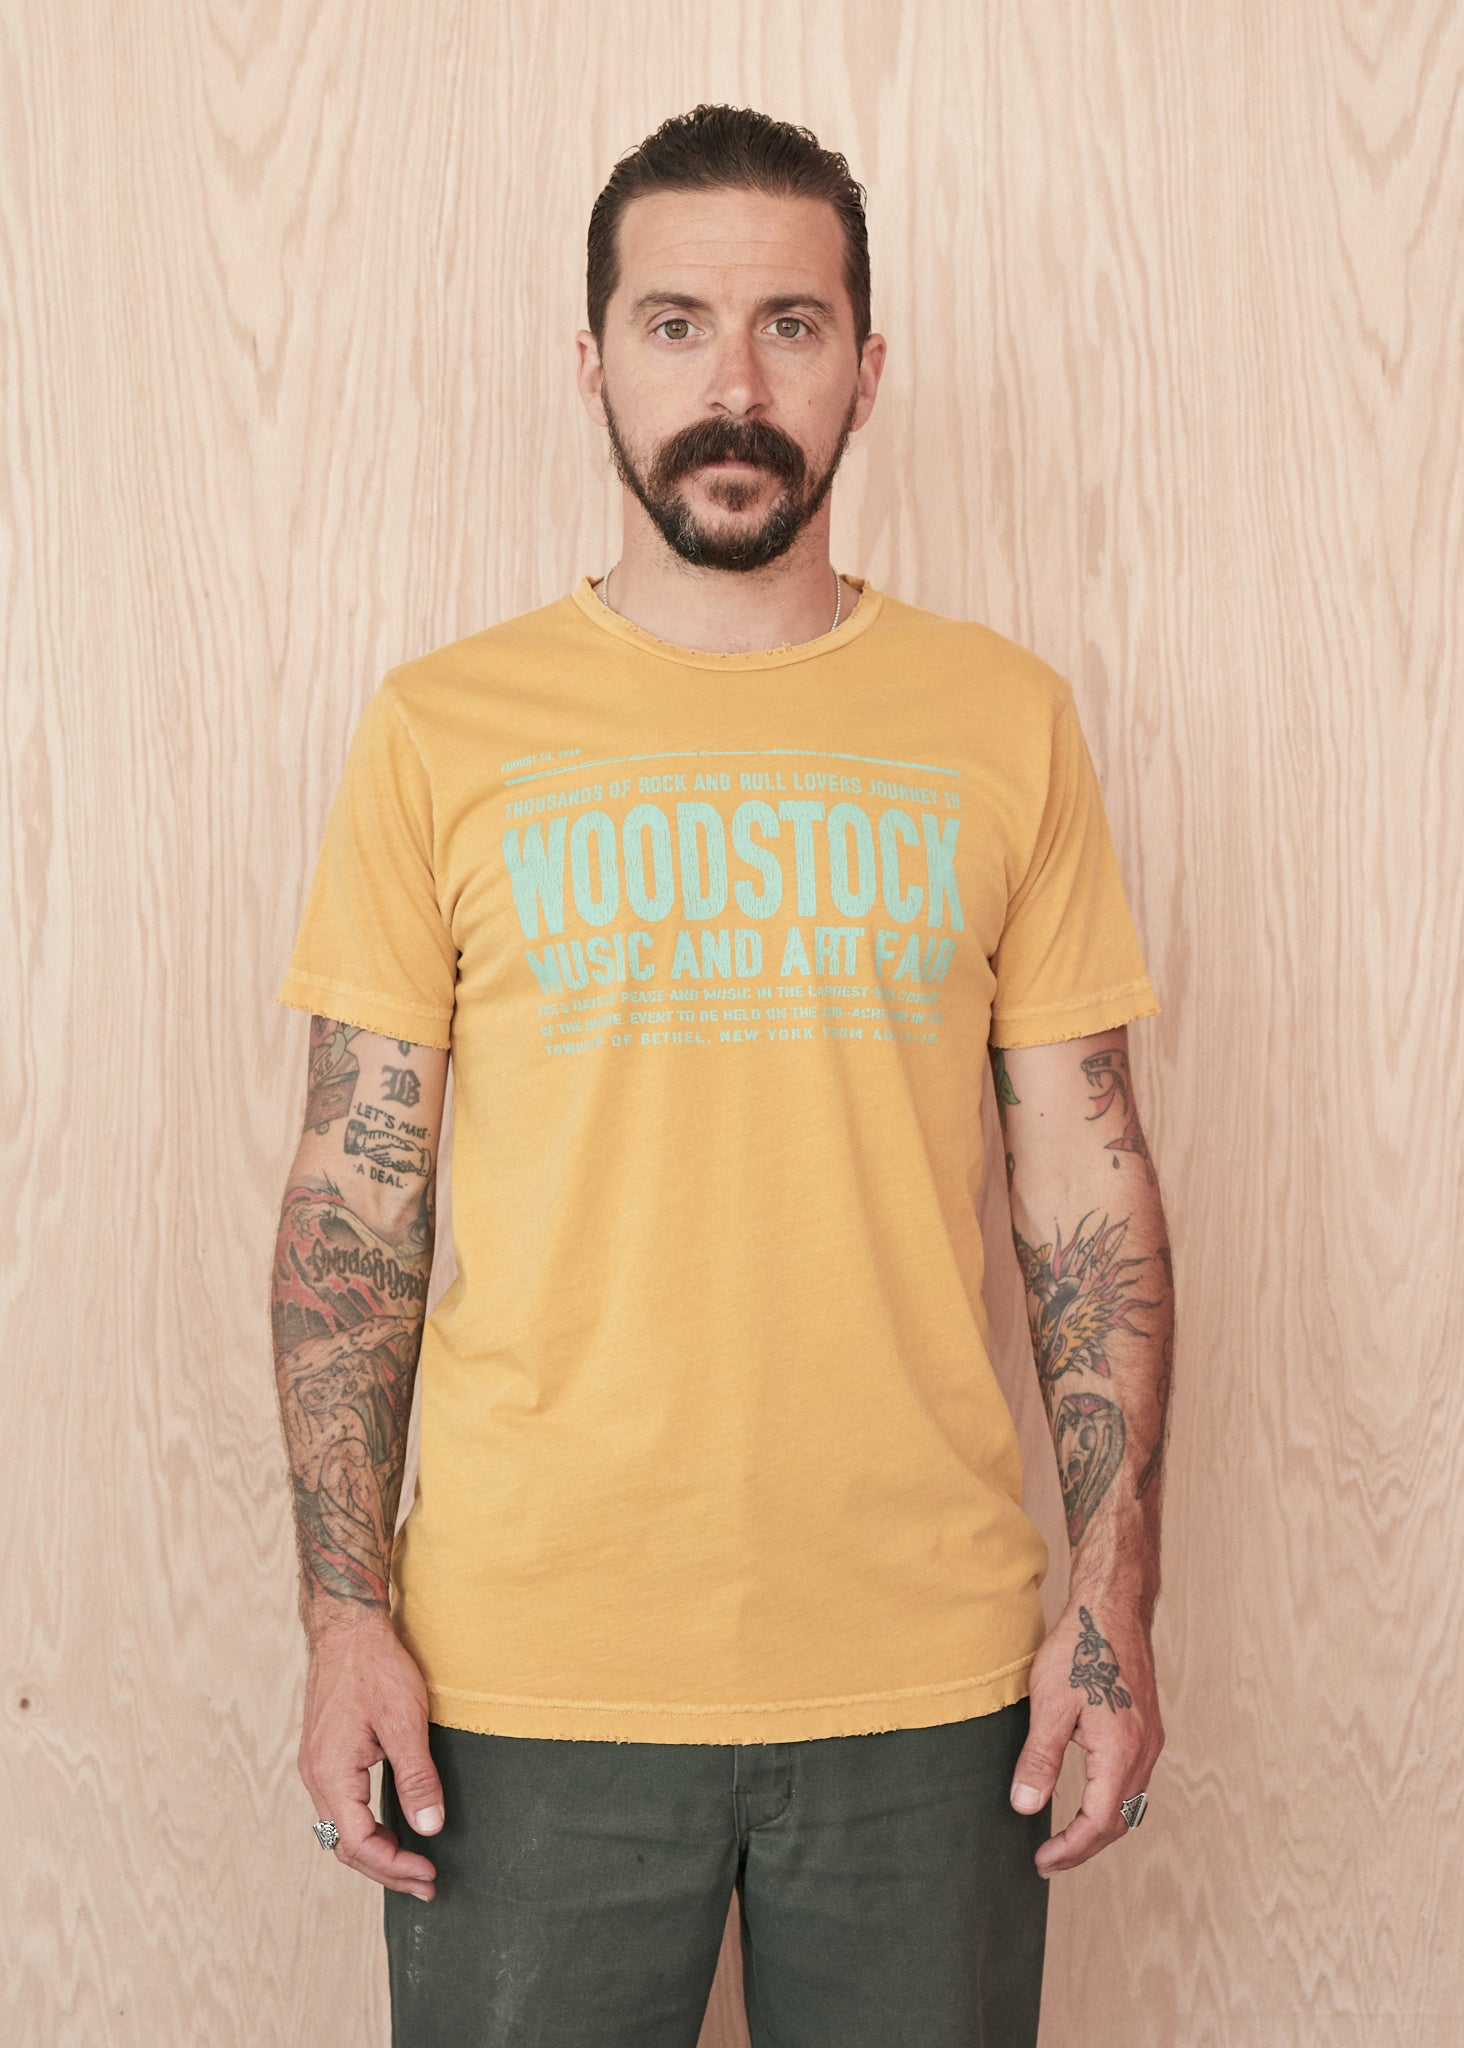 Woodstock Art Faire Men's Tee - Mustard